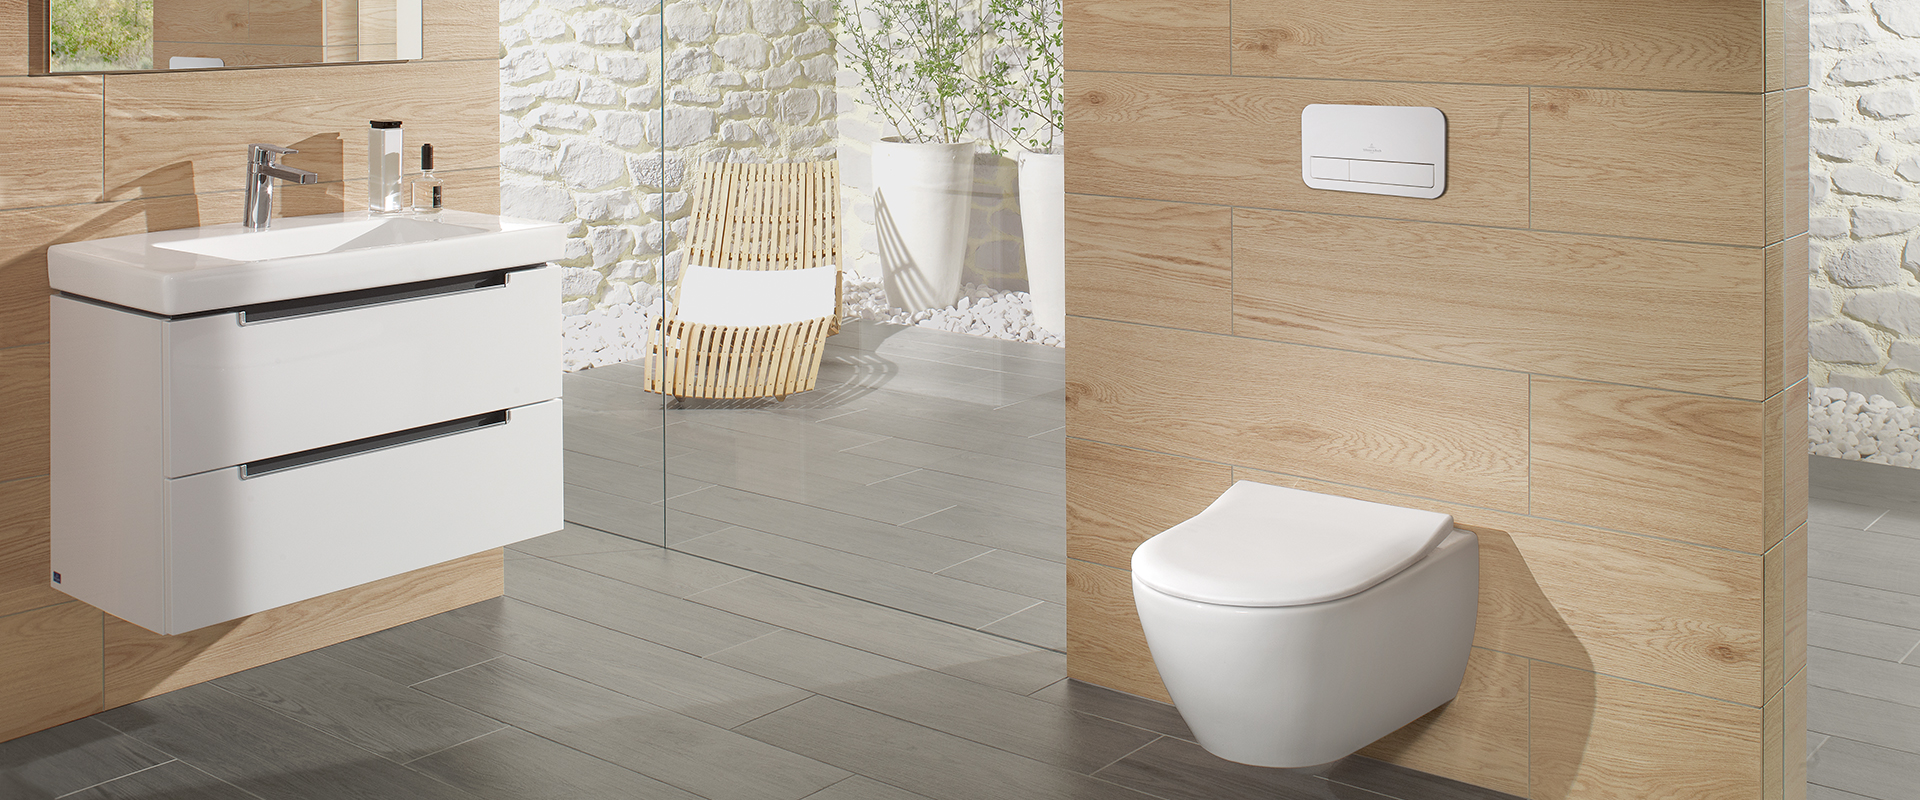 Collection viconnect from villeroy boch - Villeroy y bosch ...